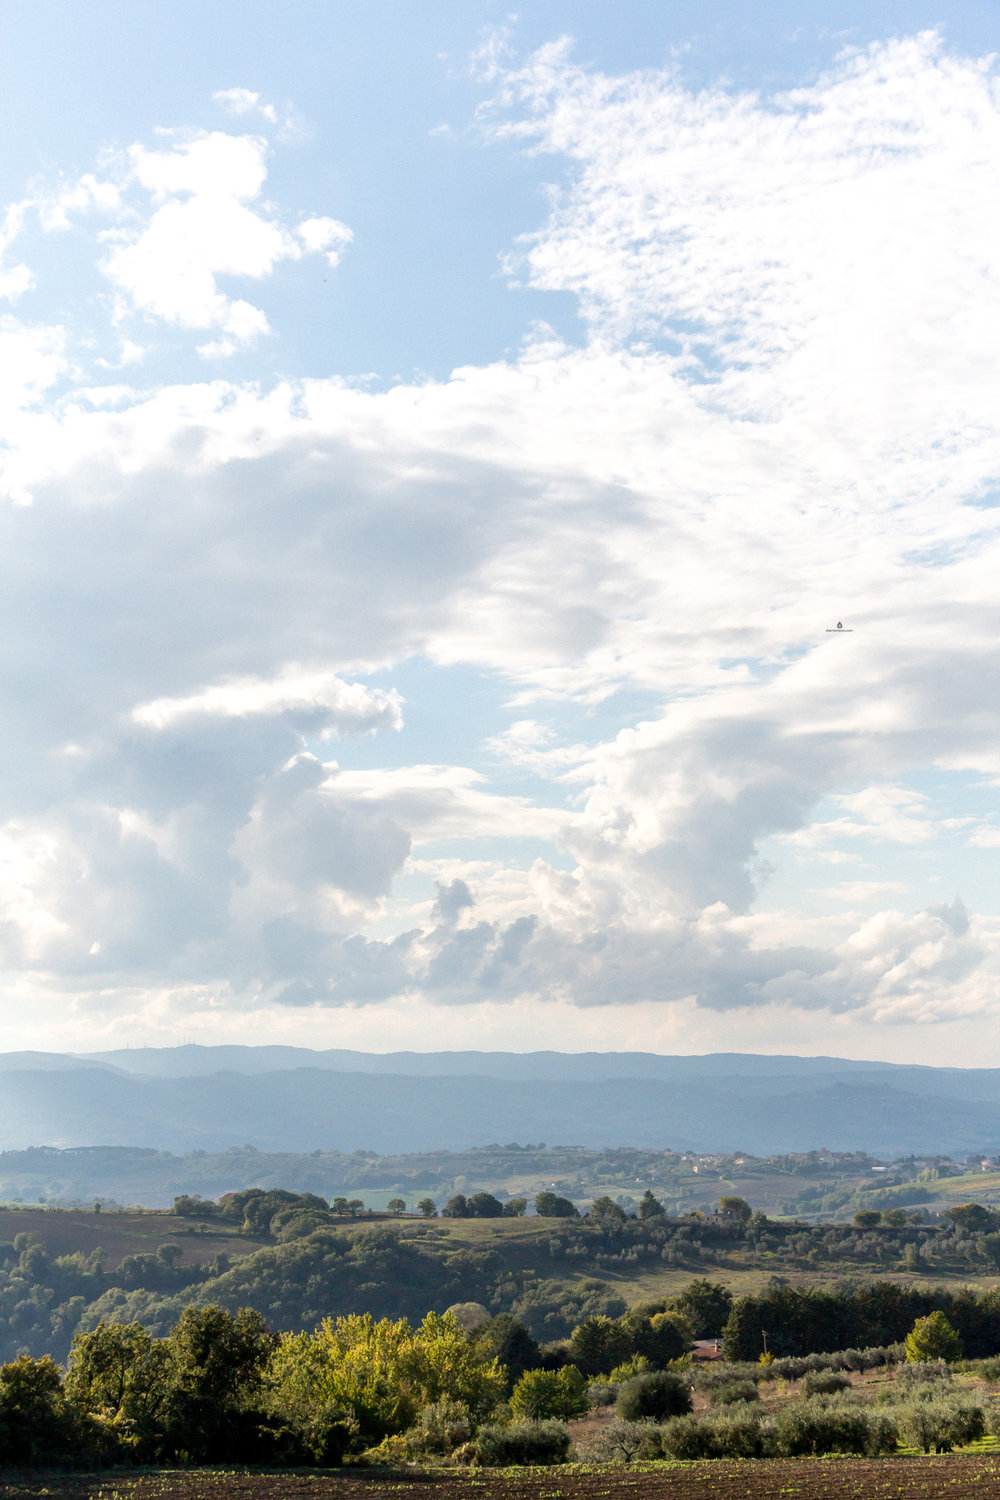 Landscapes around Todi, Umbria